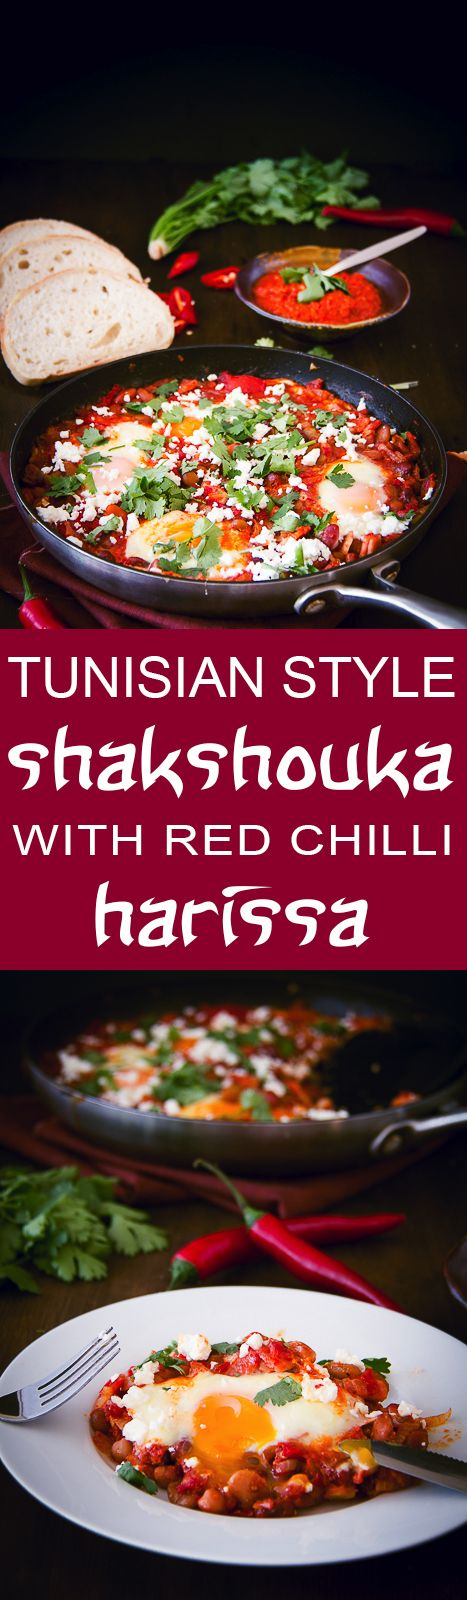 Need to kick start your breakfast with some chilli? Then this shakshouka recipe should hit the spot